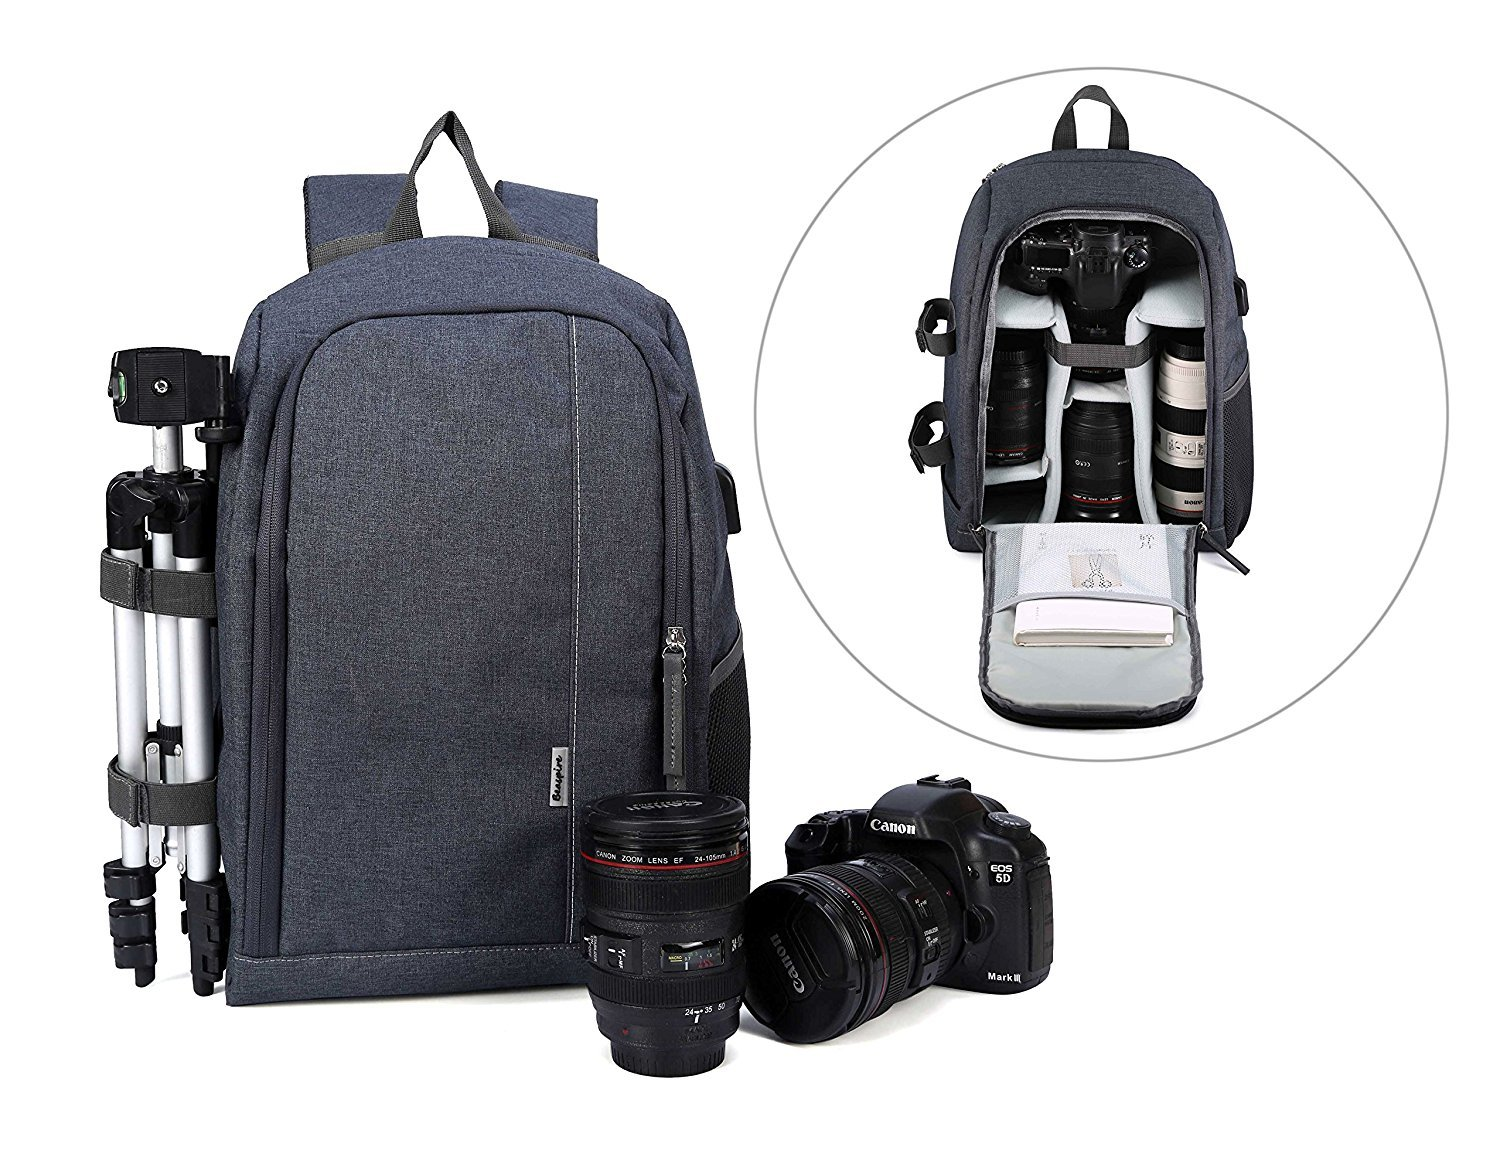 Camera Backpack Waterproof Nylon DSLR Backpack Professional Camera Bag with USB External Charging Port for Canon Nikon Sony Camera Accessories and Laptops Tablets Black (Gray) by Cozyvie (Image #2)